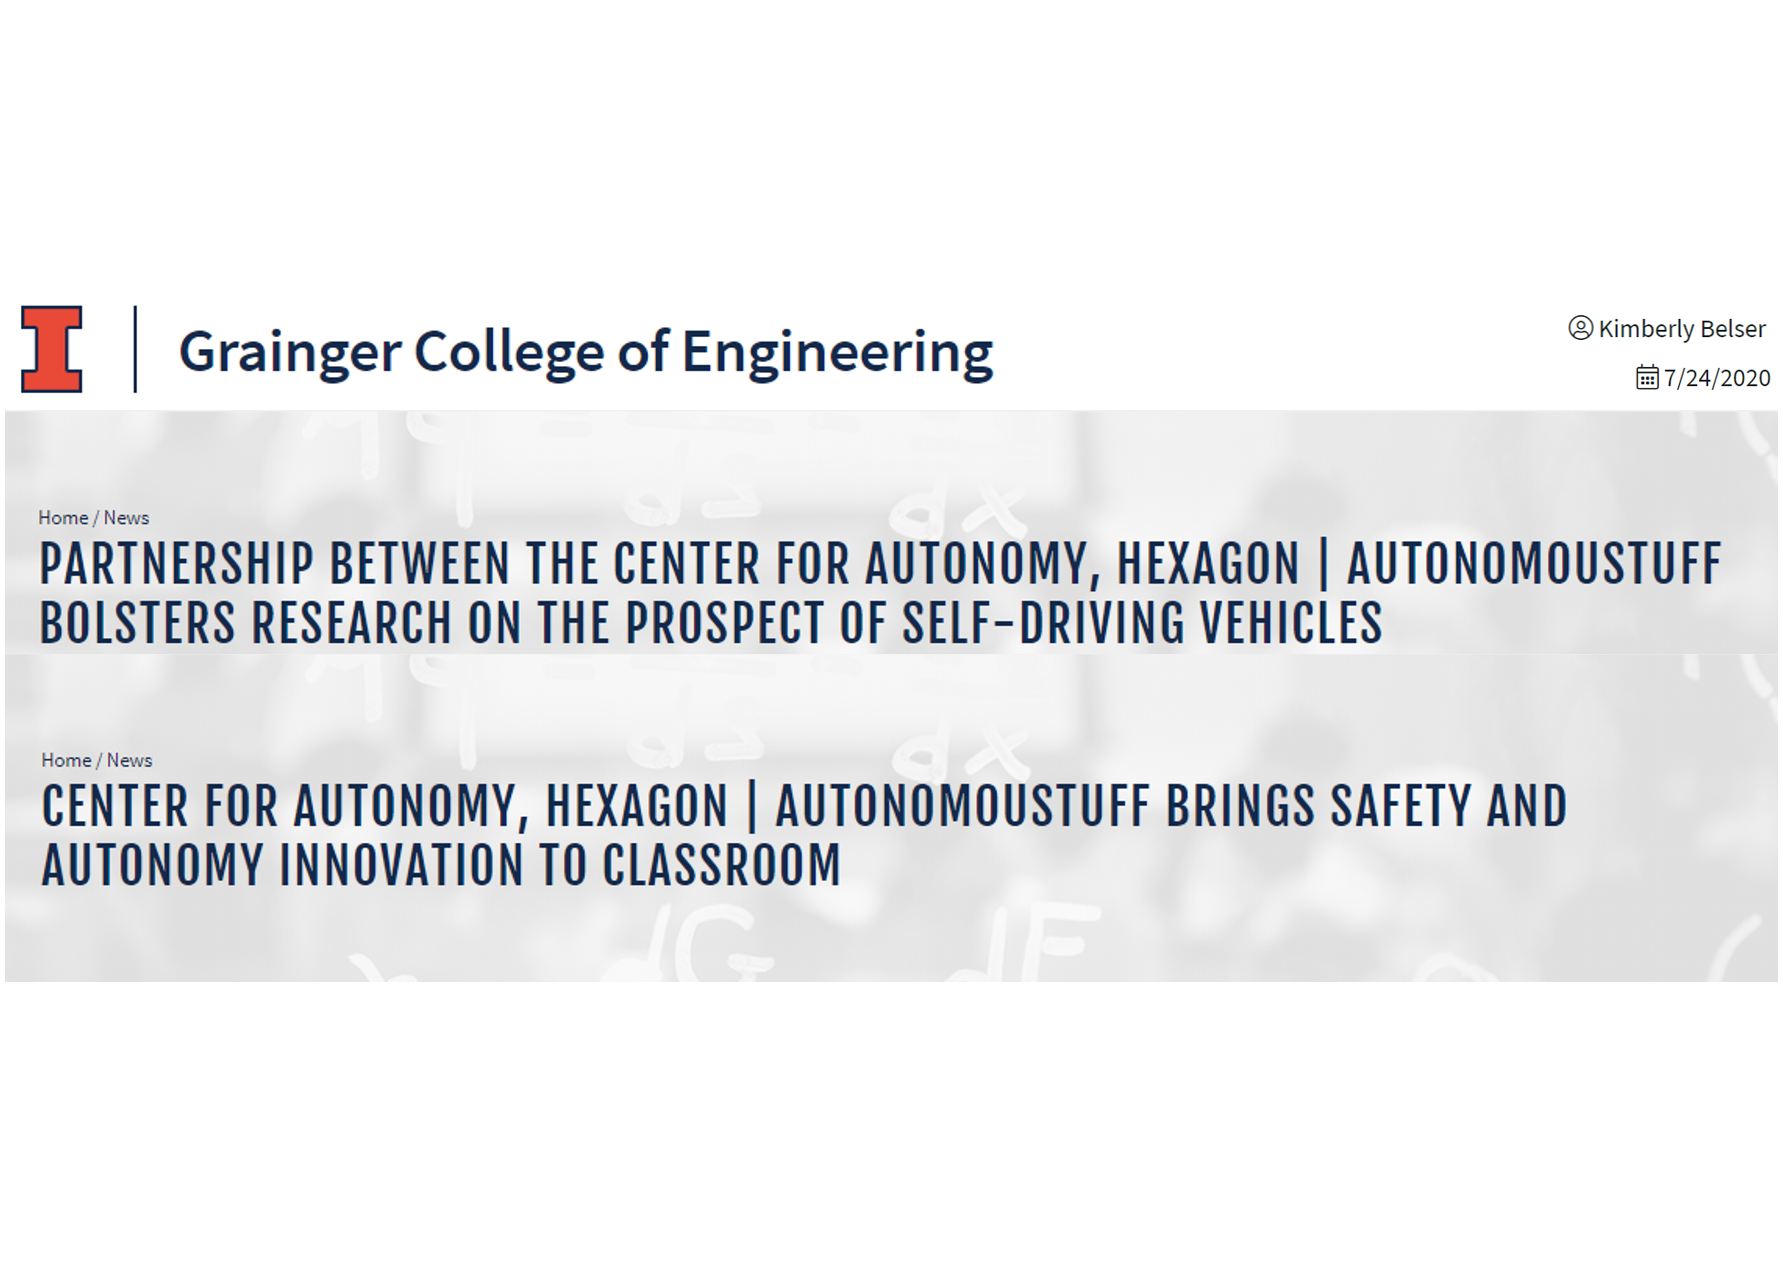 Collaboration with Hexagon | AutonomouStuff brings big changes to the classroom and research.